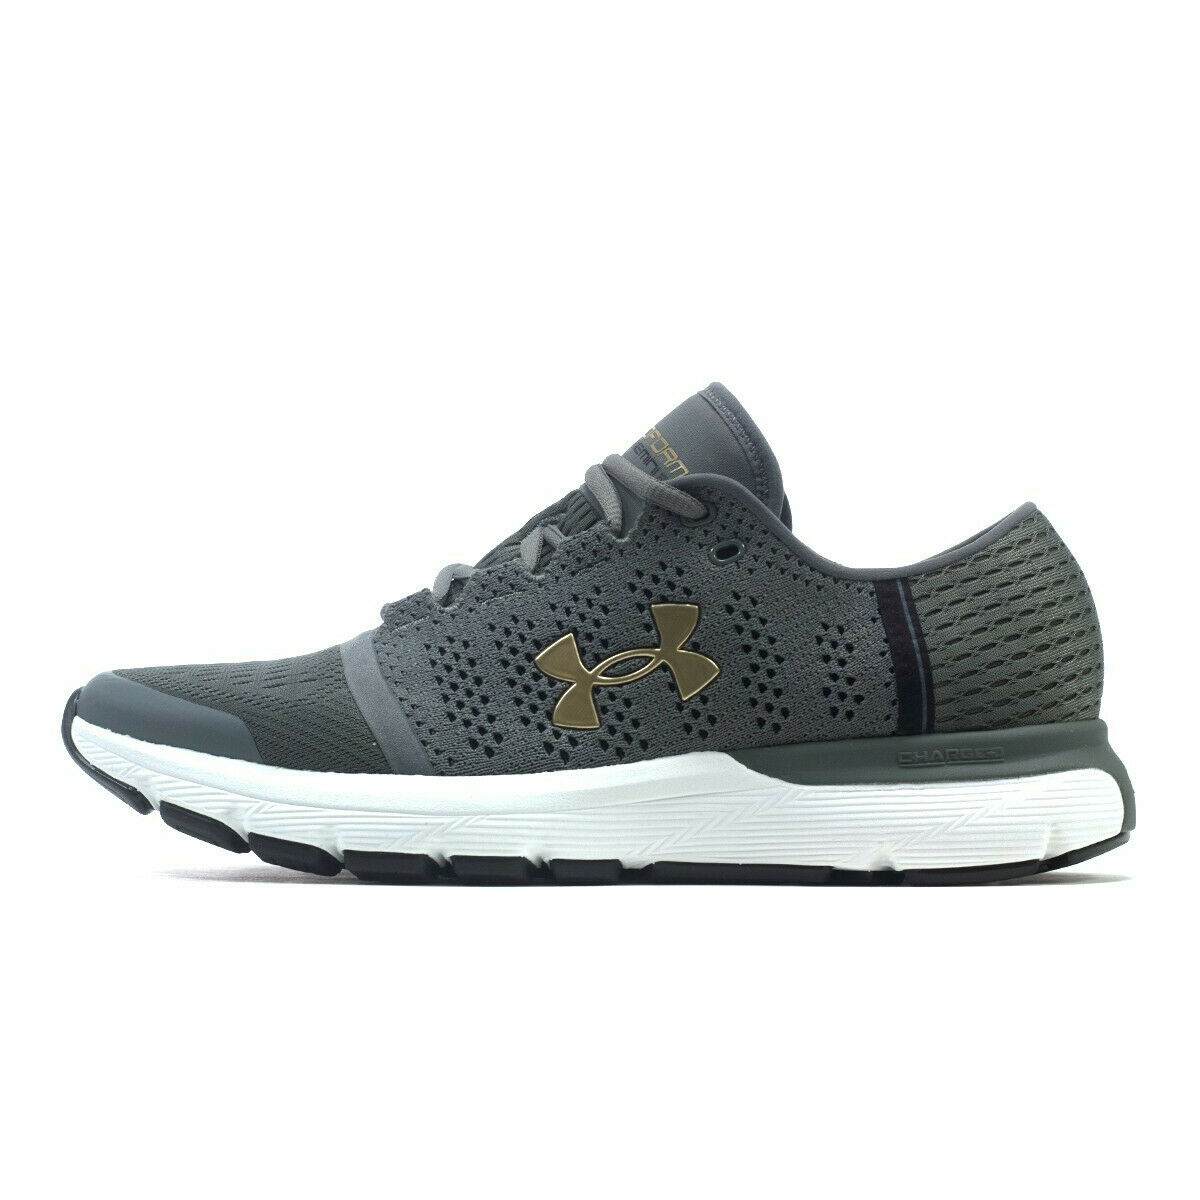 hot sale online fce52 dd5c2 Under Armour Speedform Gemini 3 Vent Men's Running Trainer Shoes Grey